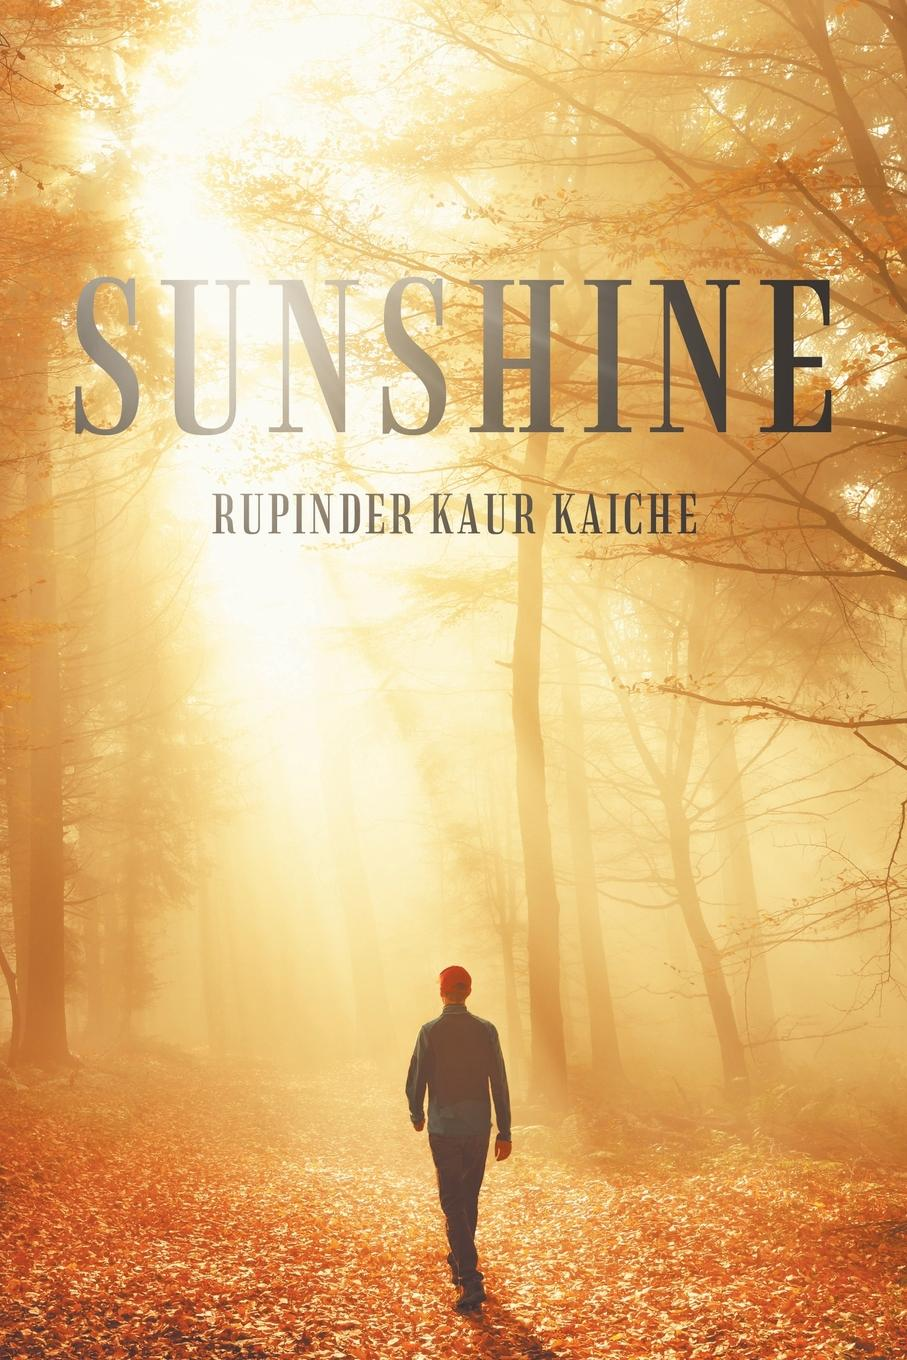 Rupinder Kaur Kaiche Sunshine matthew e nordin musings of the northern poet poems of love and faith